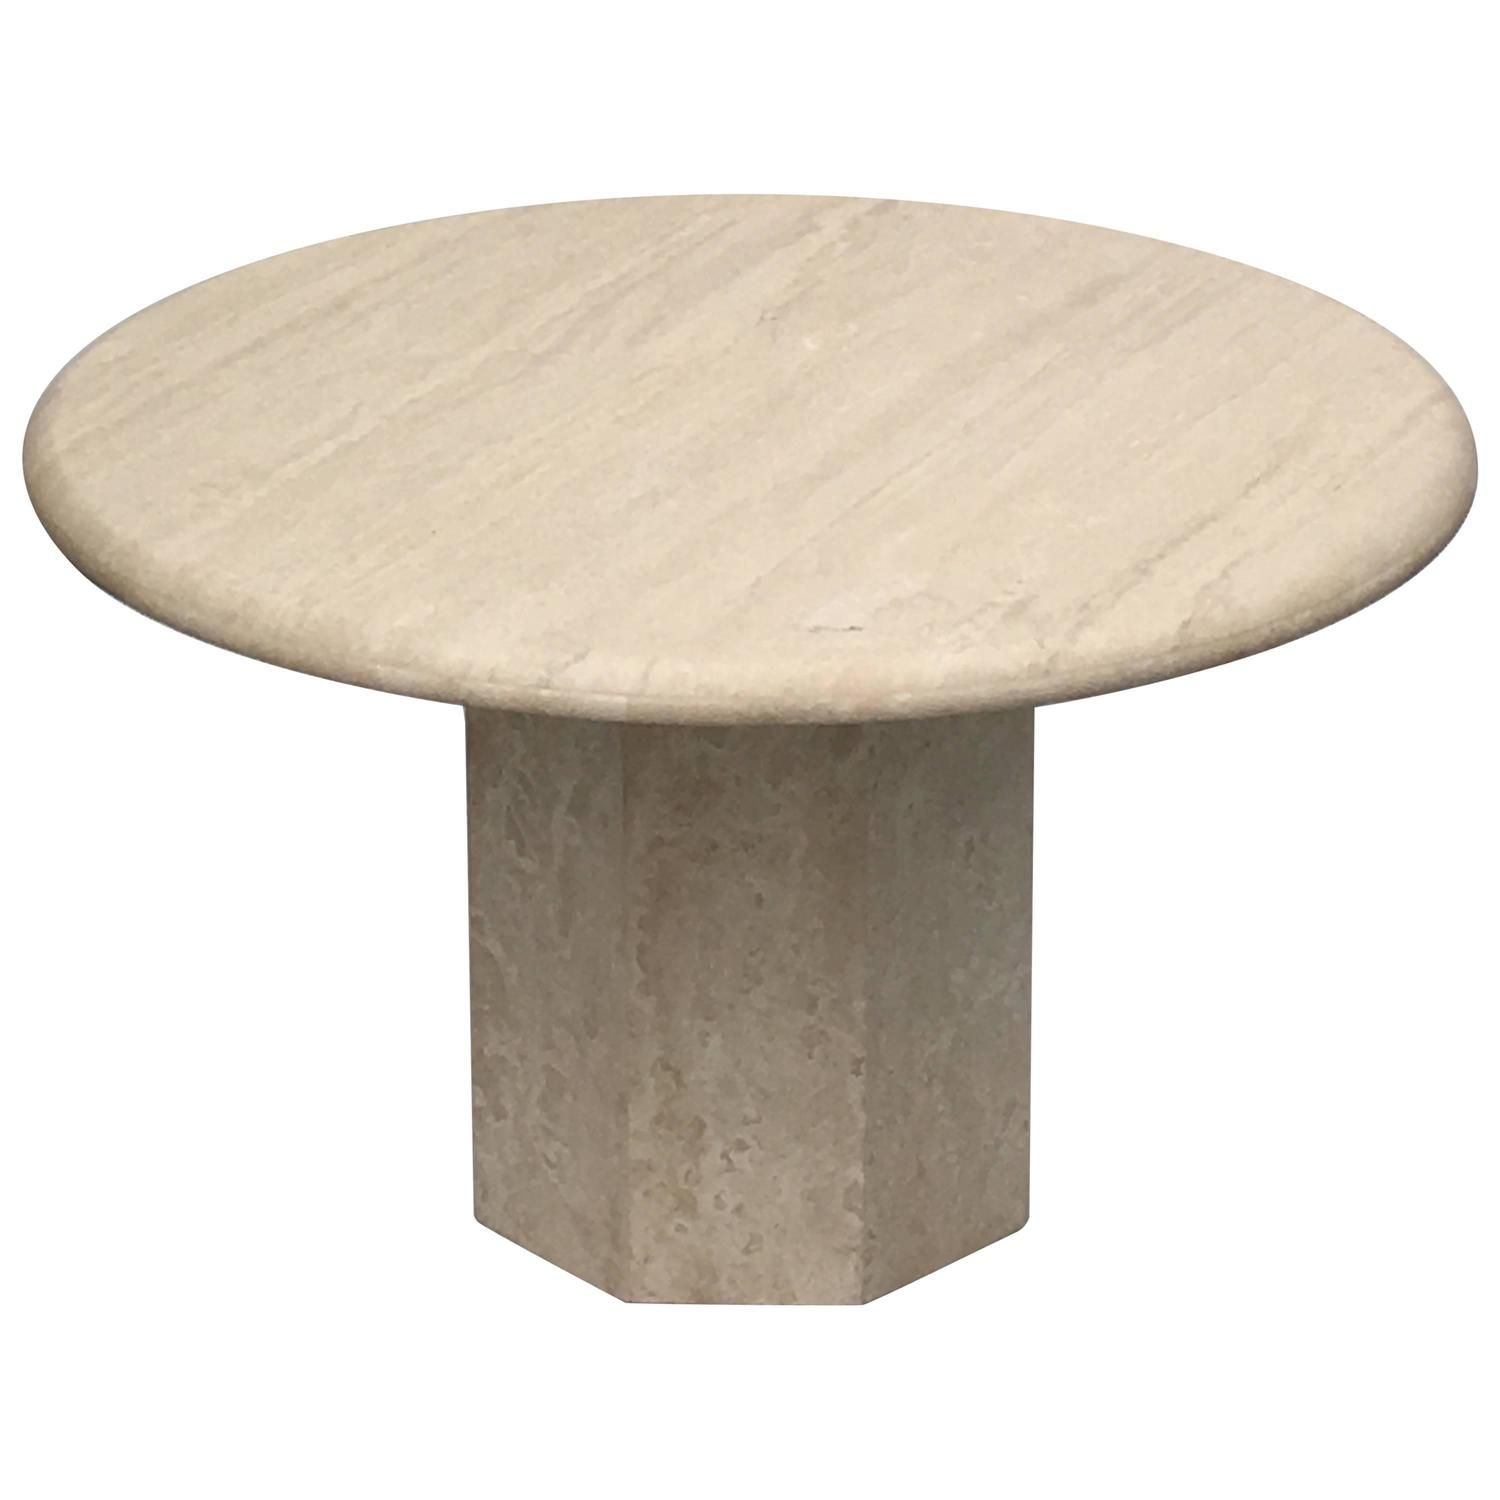 Round Italia Travertine Dining Table